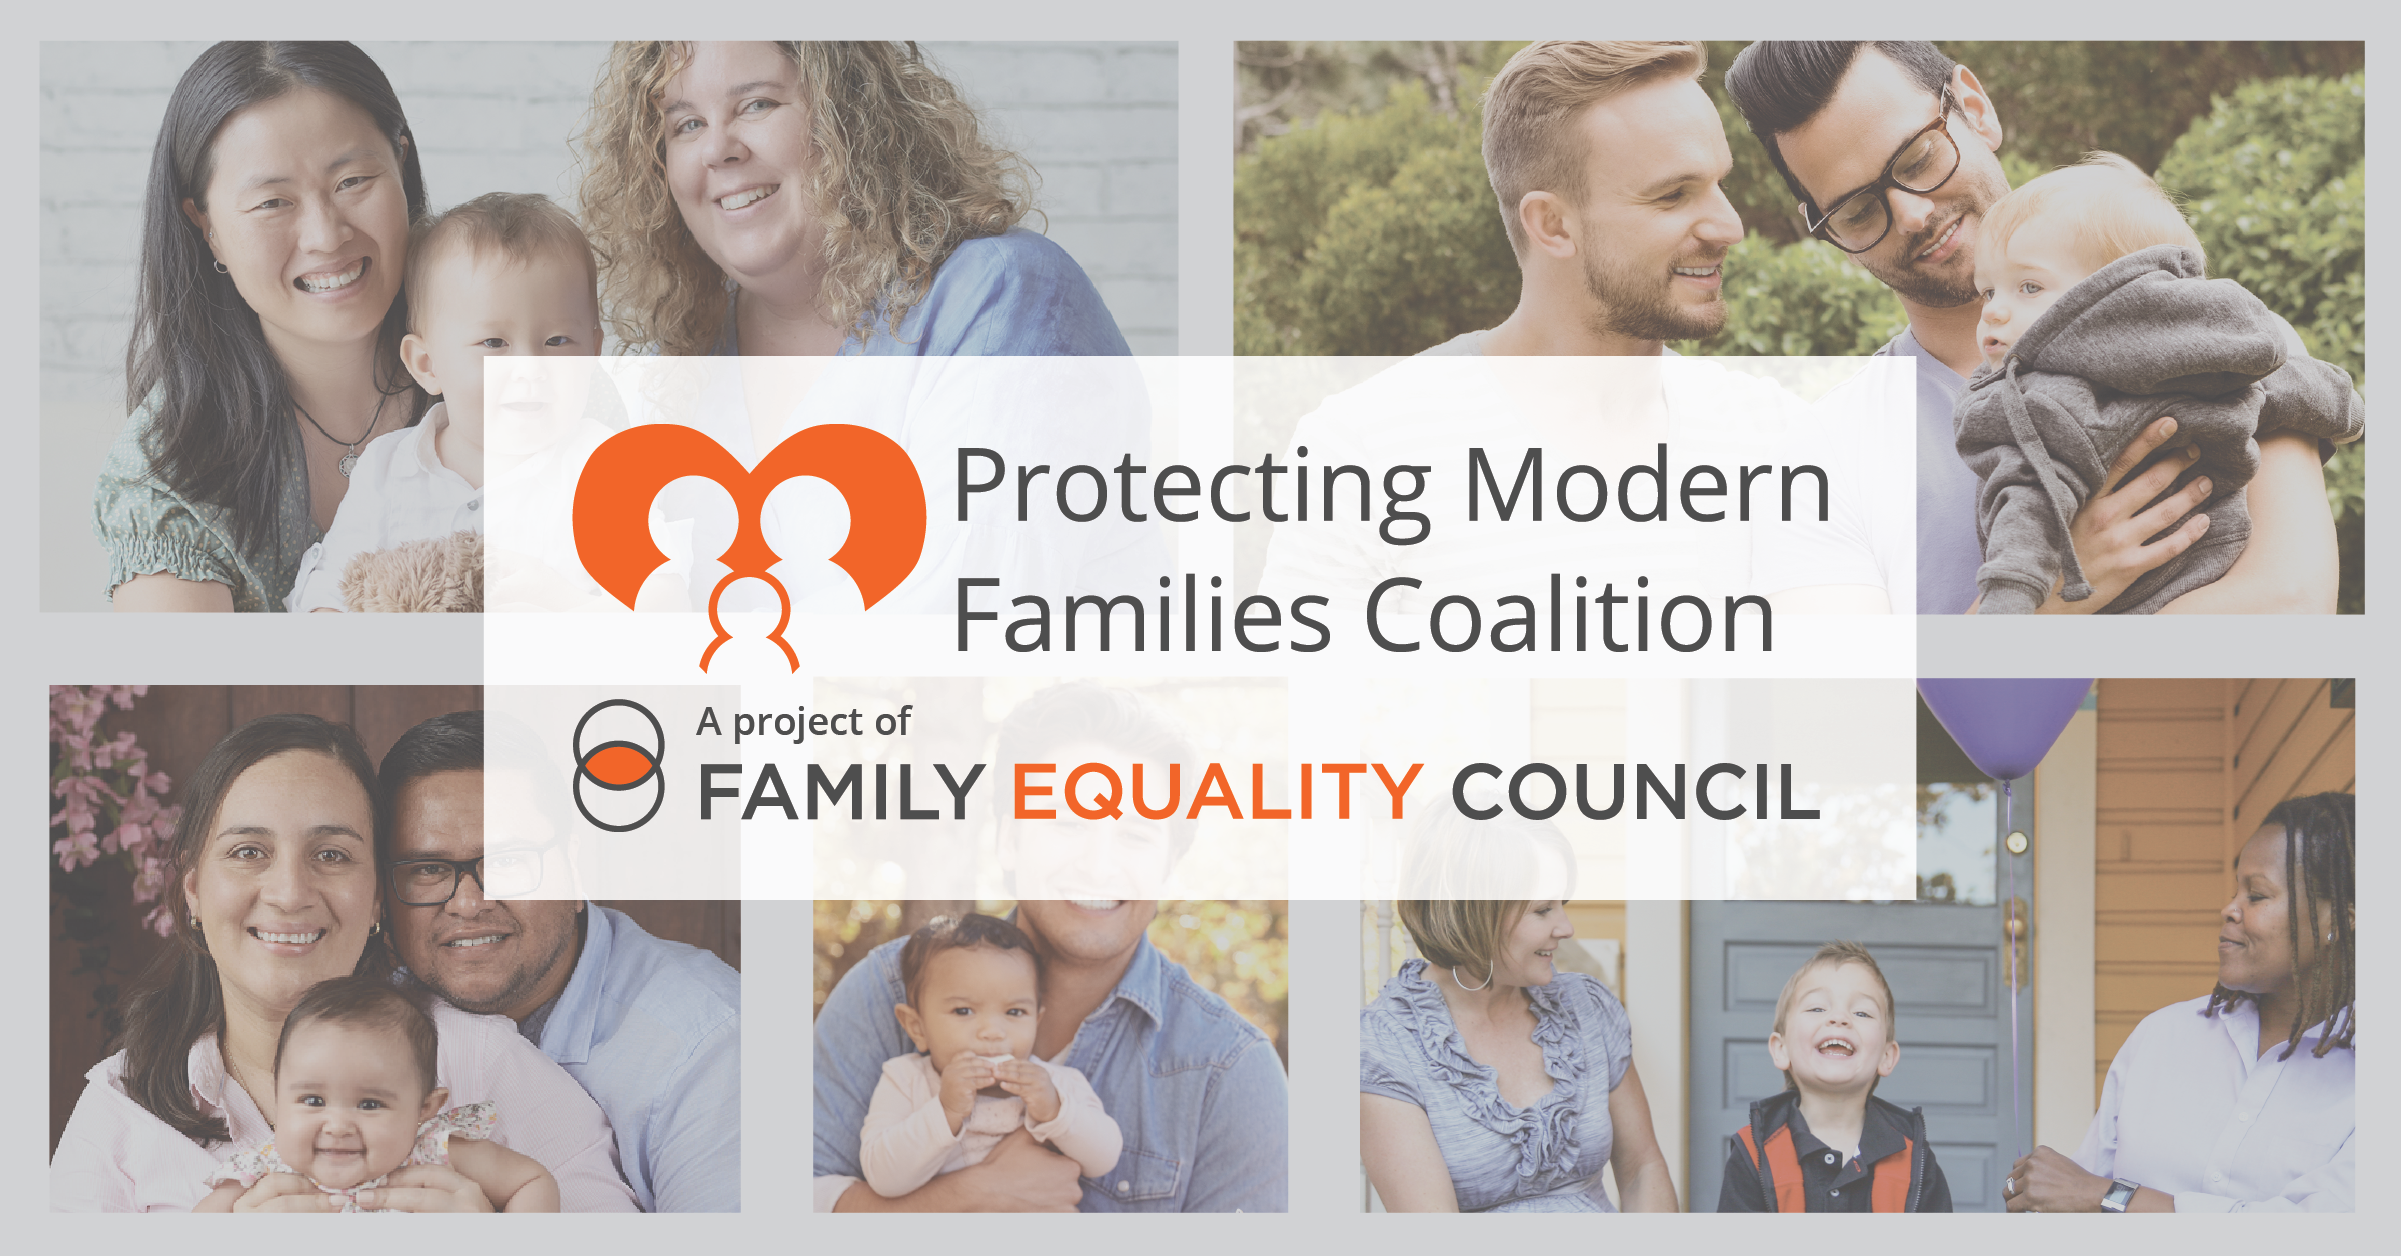 Protecting Modern Families Coalition A Project of Family Equality Council